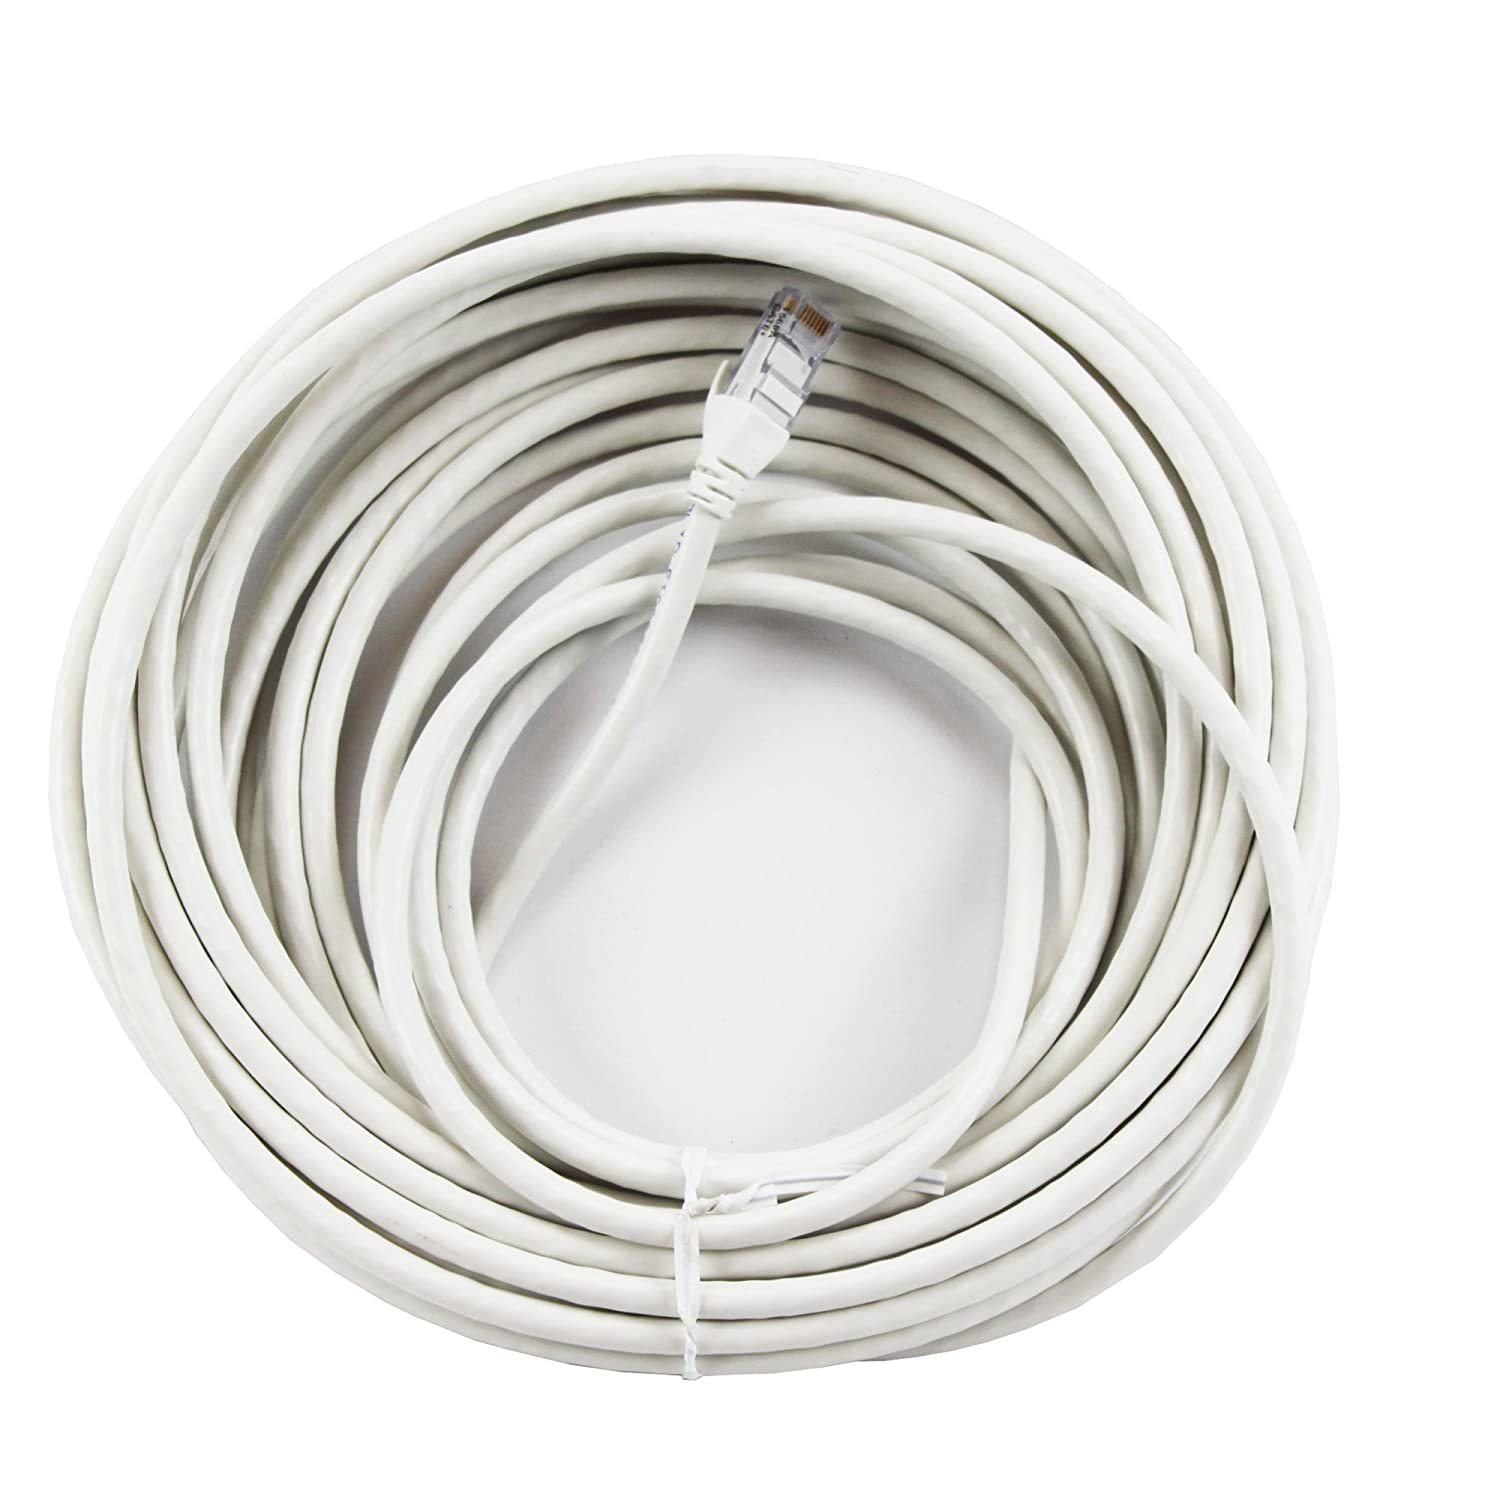 Belden Ax350528 35 White 4 Pair 23awg Cat6 Patch Cord Cat5e Ethernet Cable Snagless Plenum 2539 Black Computers Accessories